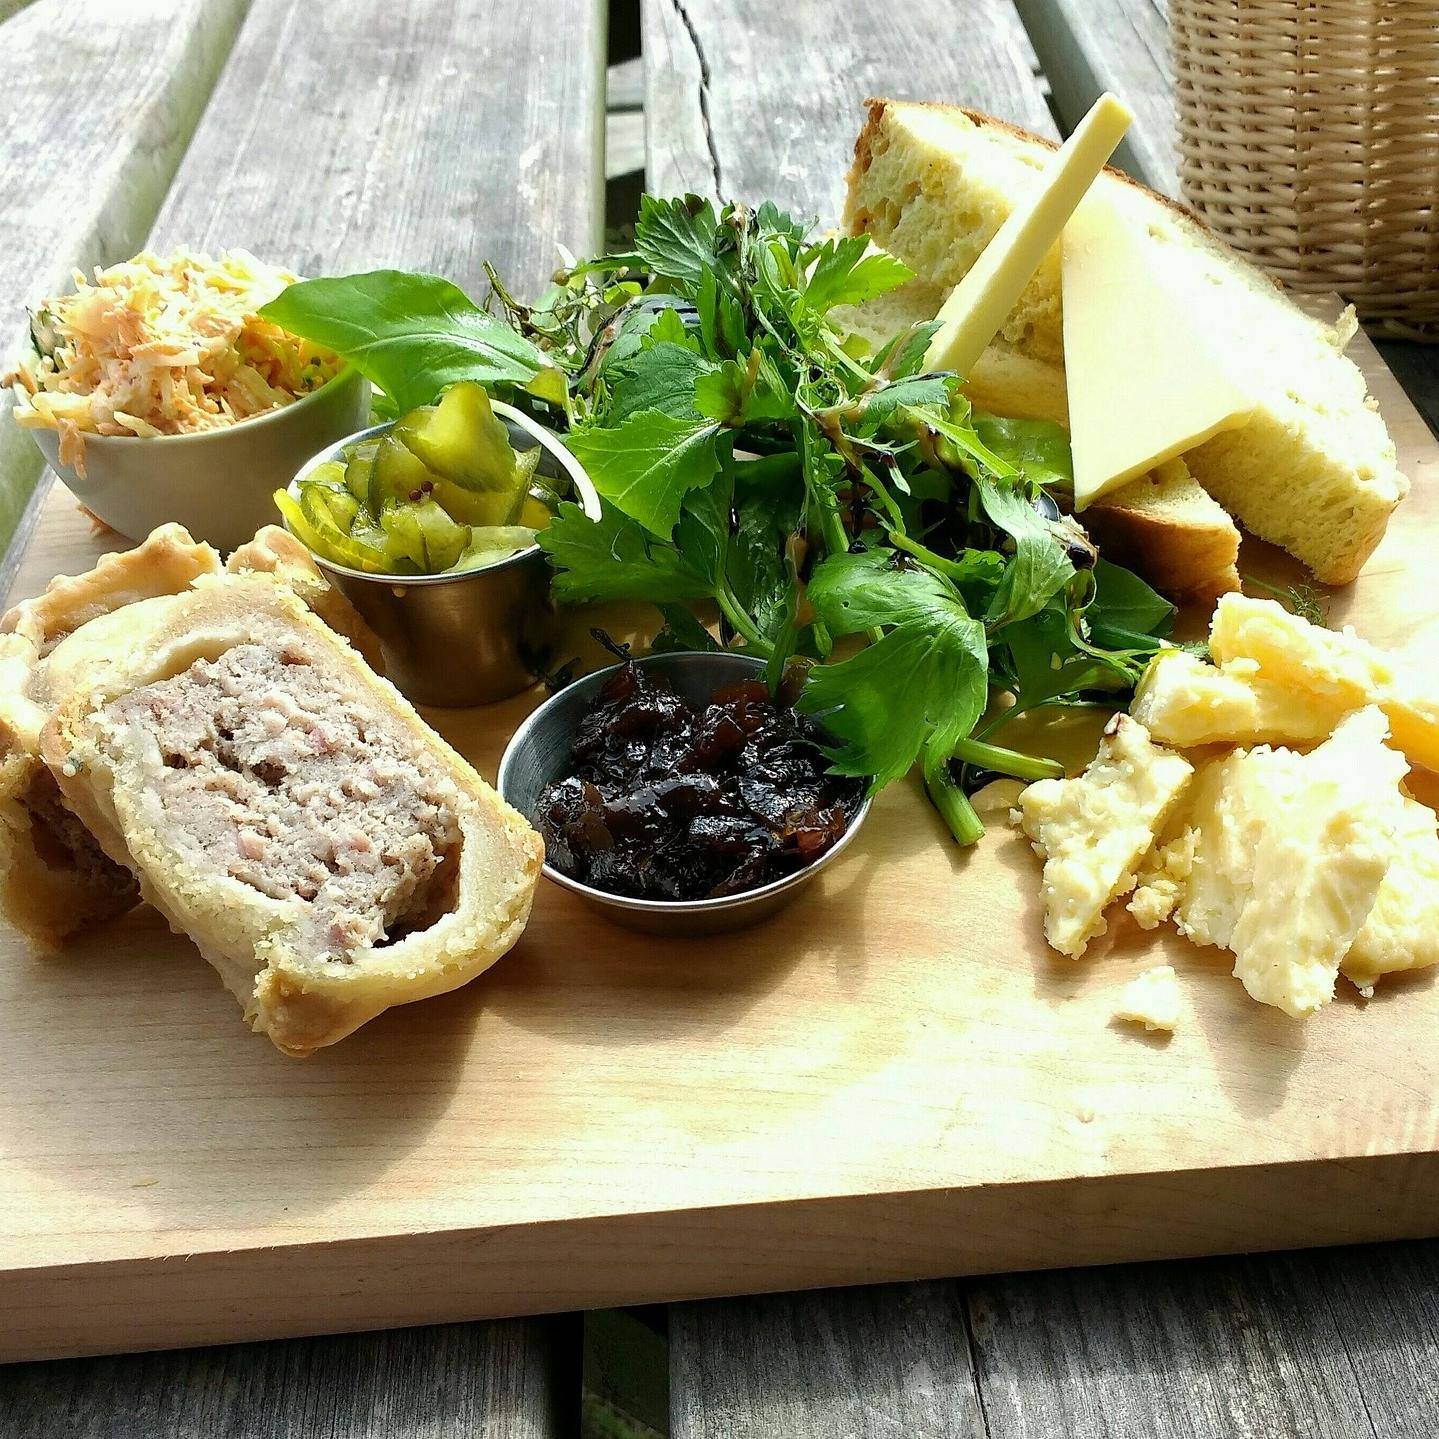 Cheese board with chutney